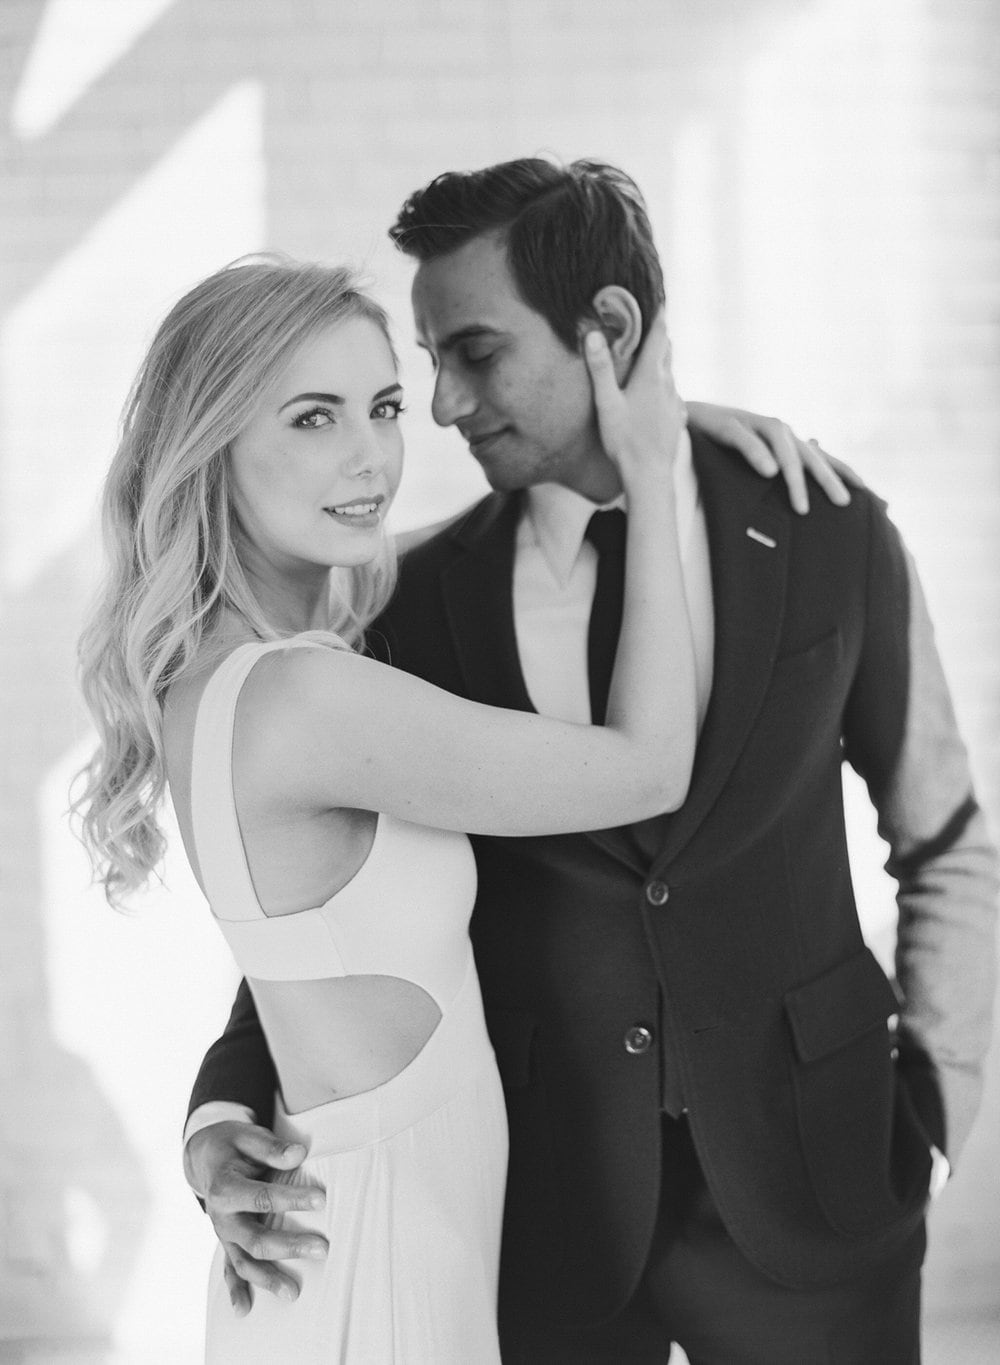 ONE_ELEVEN_EAST_MODERN_ENGAGEMENT_SHOOT_AUSTIN_TX_BY_MATTHEW_MOORE_PHOTOGRAPHY_00011.jpg